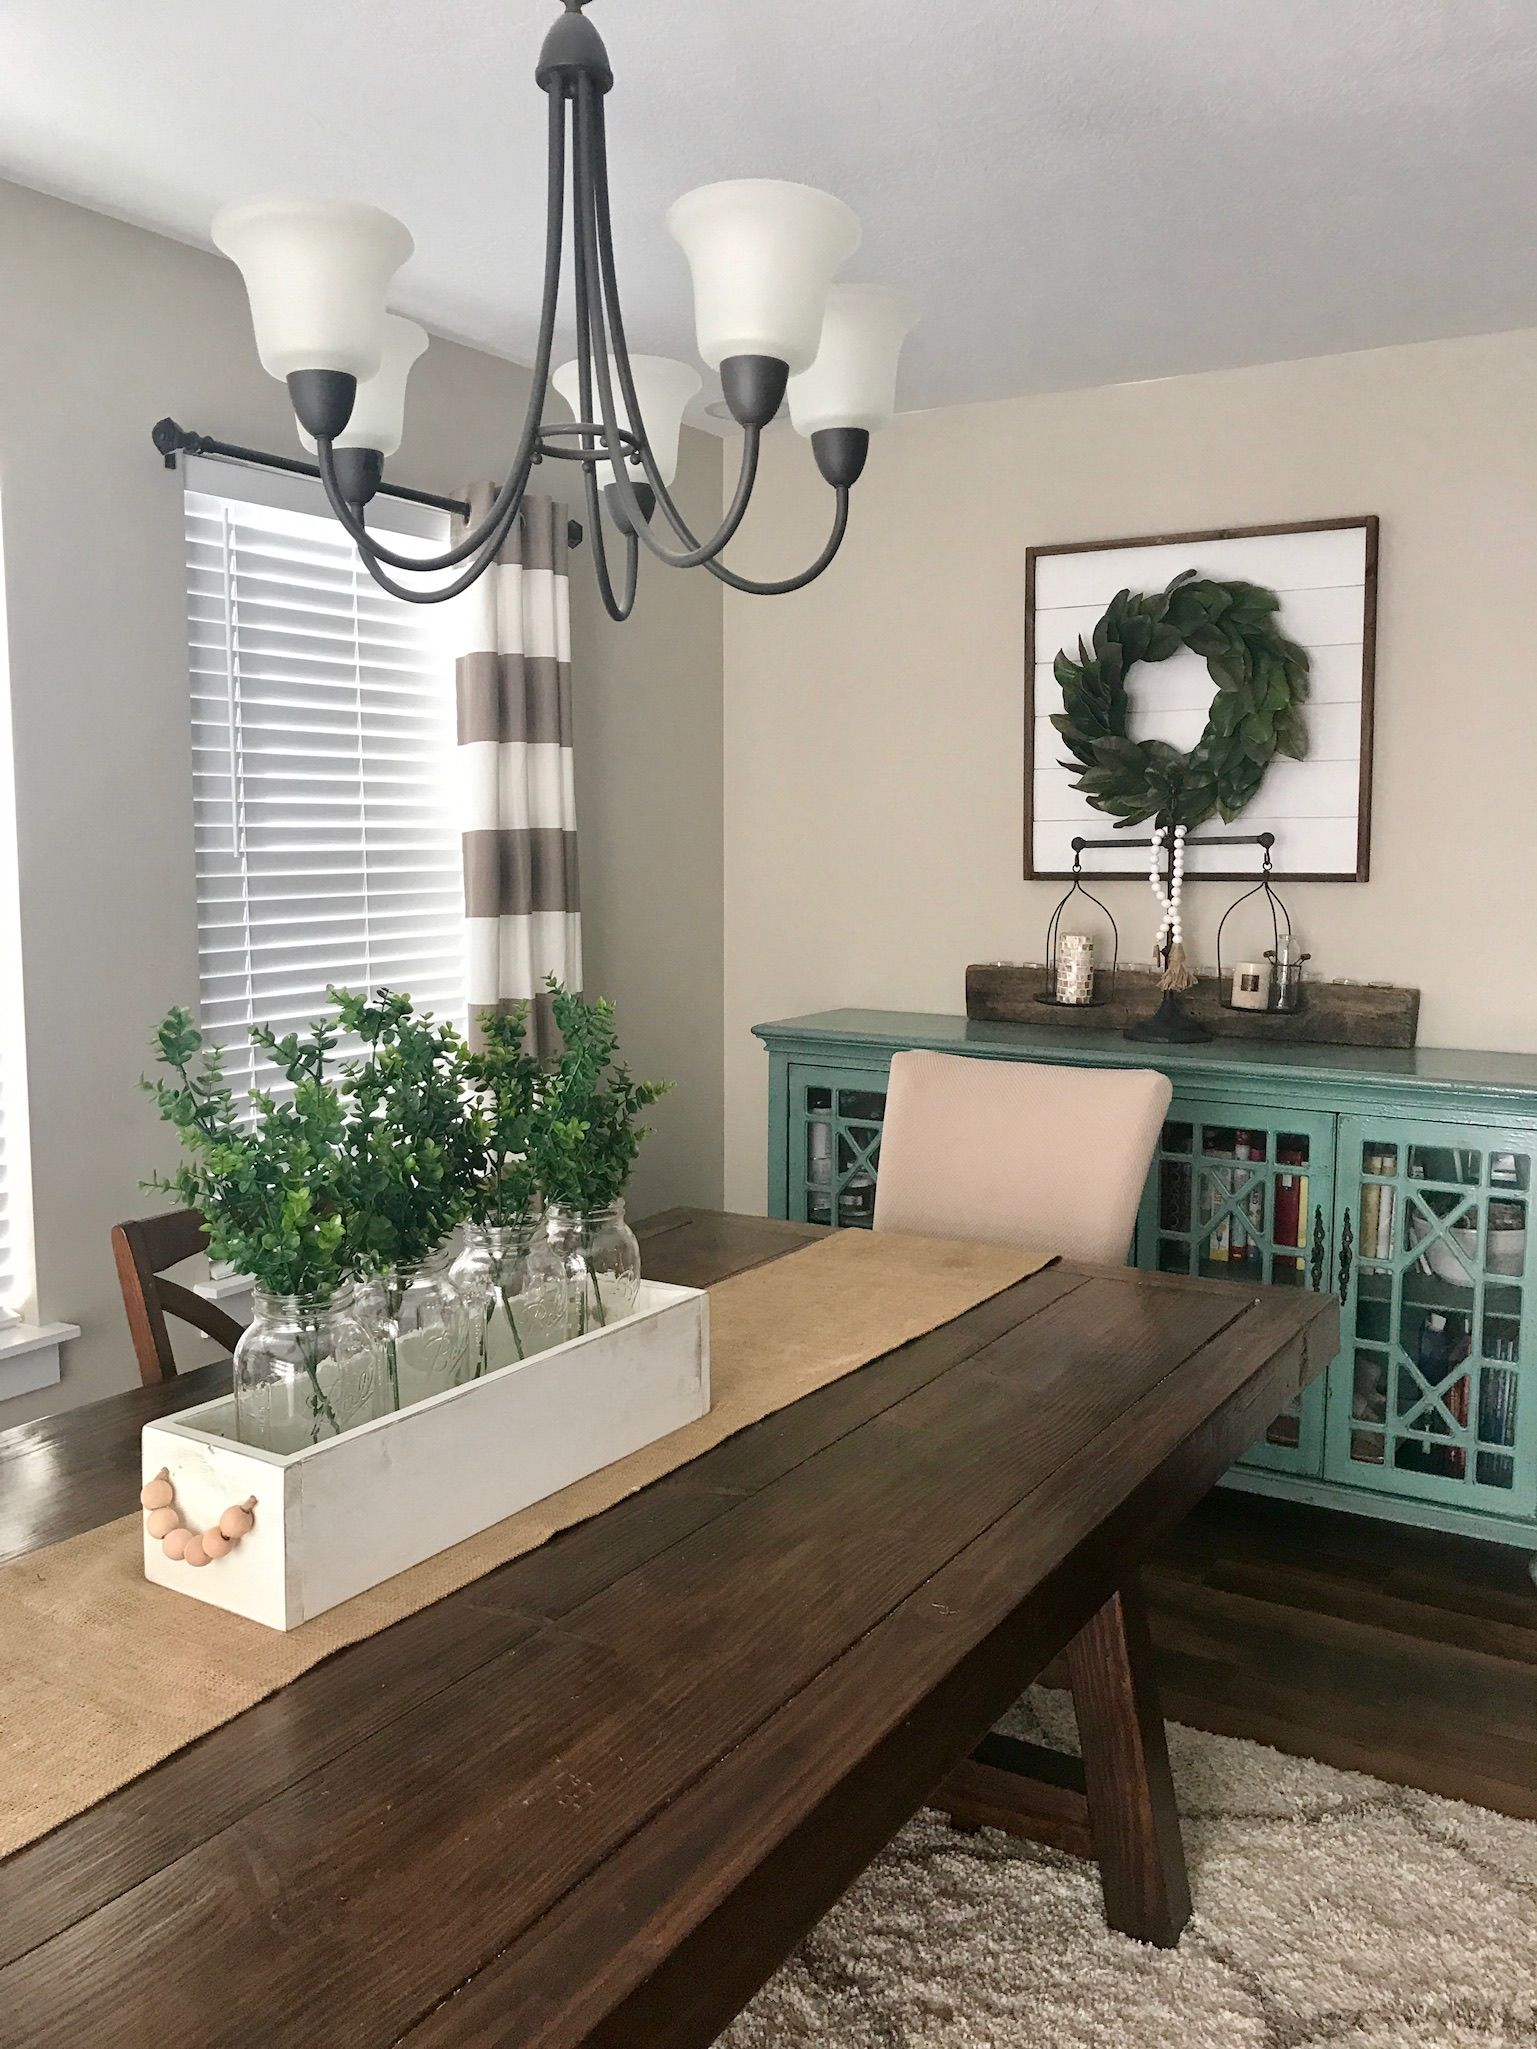 Beautiful Wood Caddy Centerpiece Farmhouse Style Kitchen With A Beautiful Shiplap Si Dining Room Table Centerpieces Dining Room Table Decor Dining Table Decor